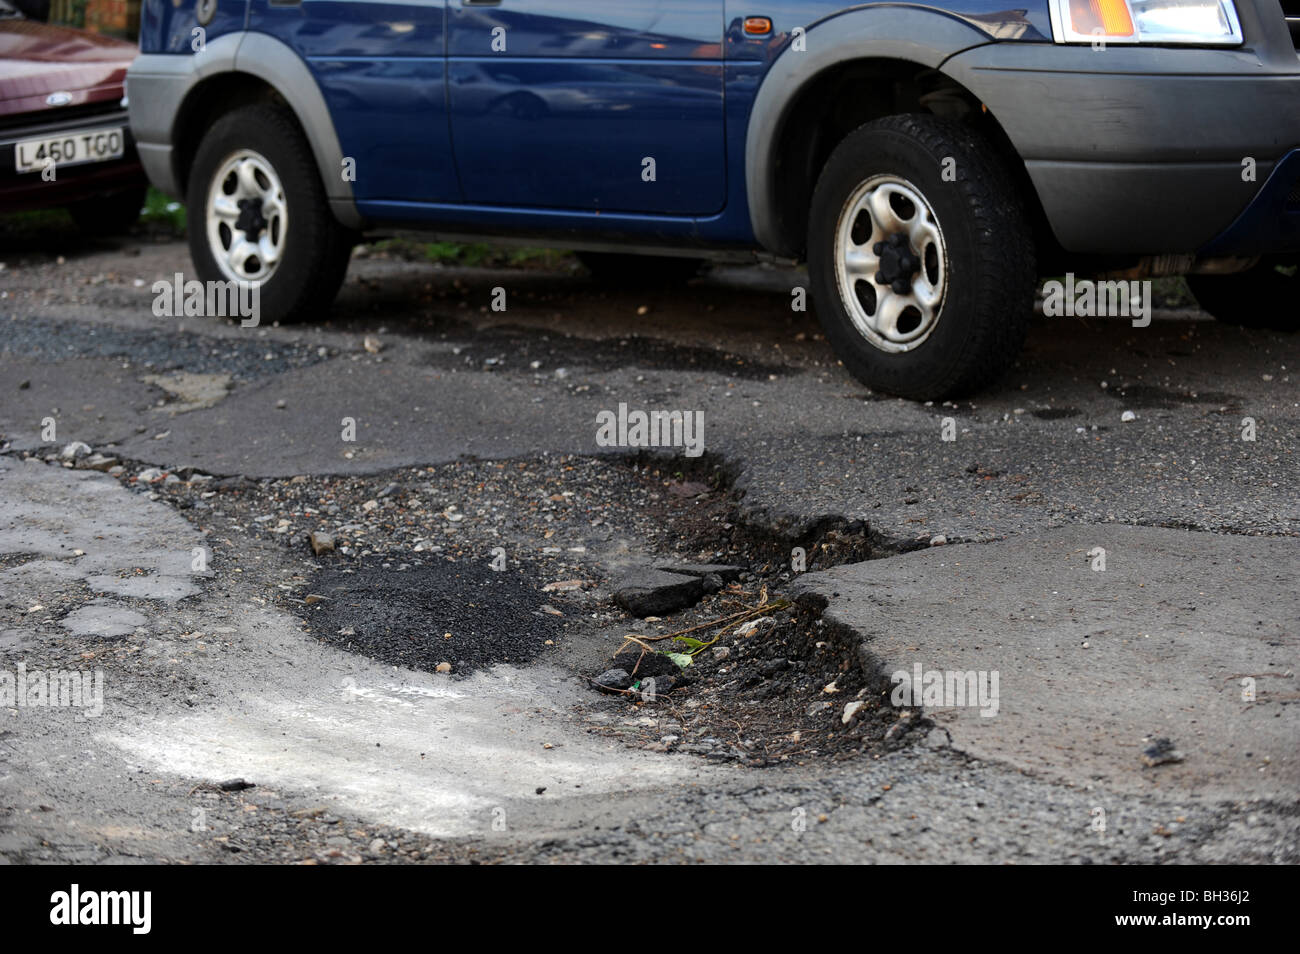 Potholes in a busy road caused by the recent snow and freezing weather - Stock Image